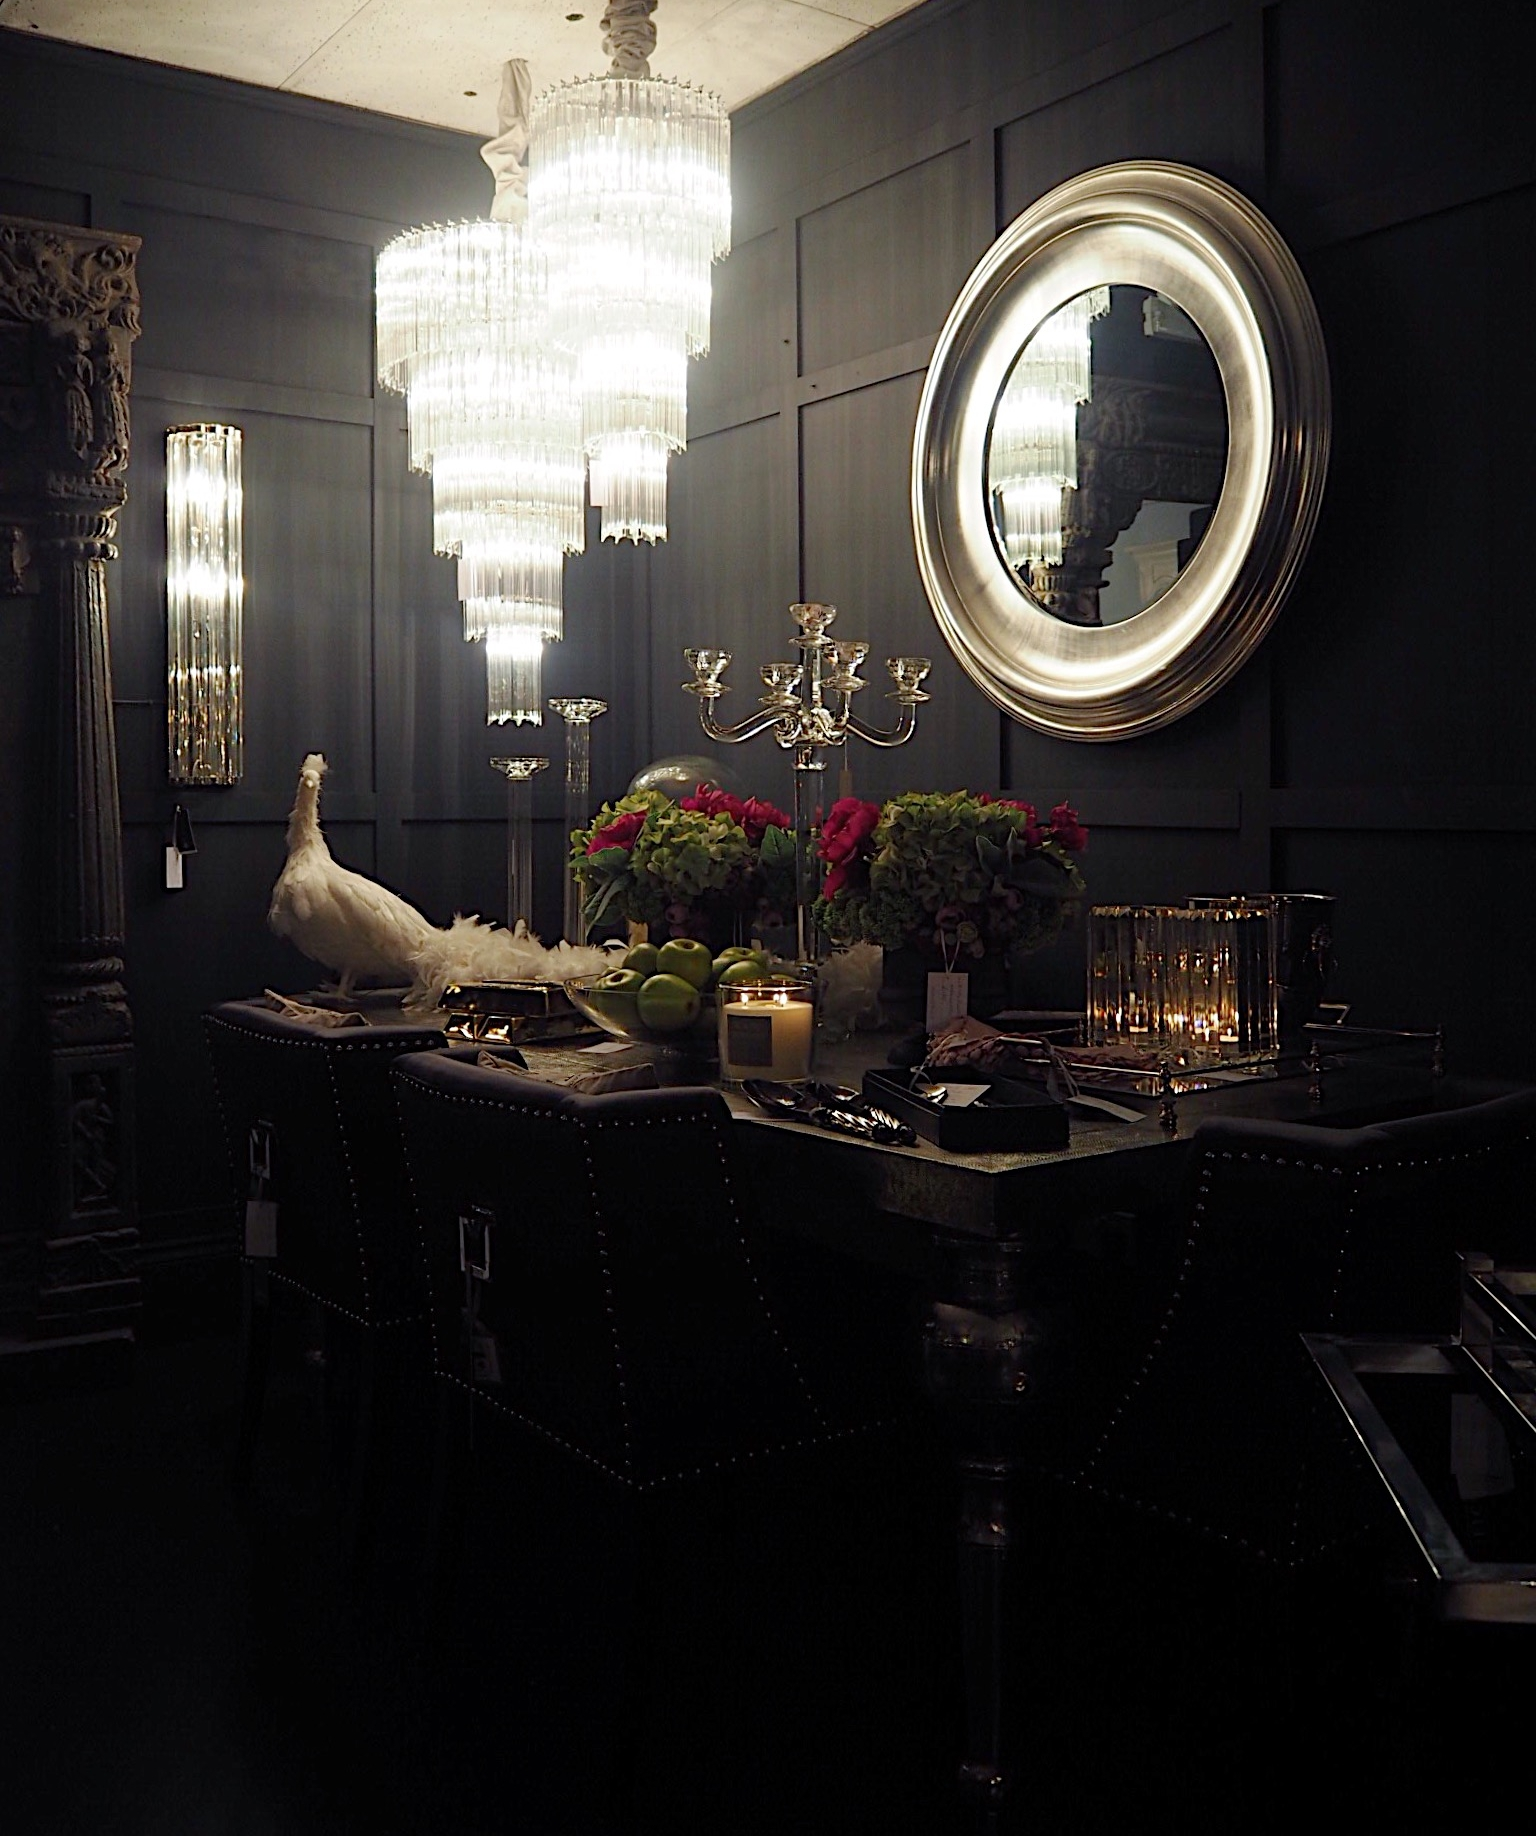 The dark background in the Sweetpea & Willow showroom frames the wall mirror and items on the table perfectly.